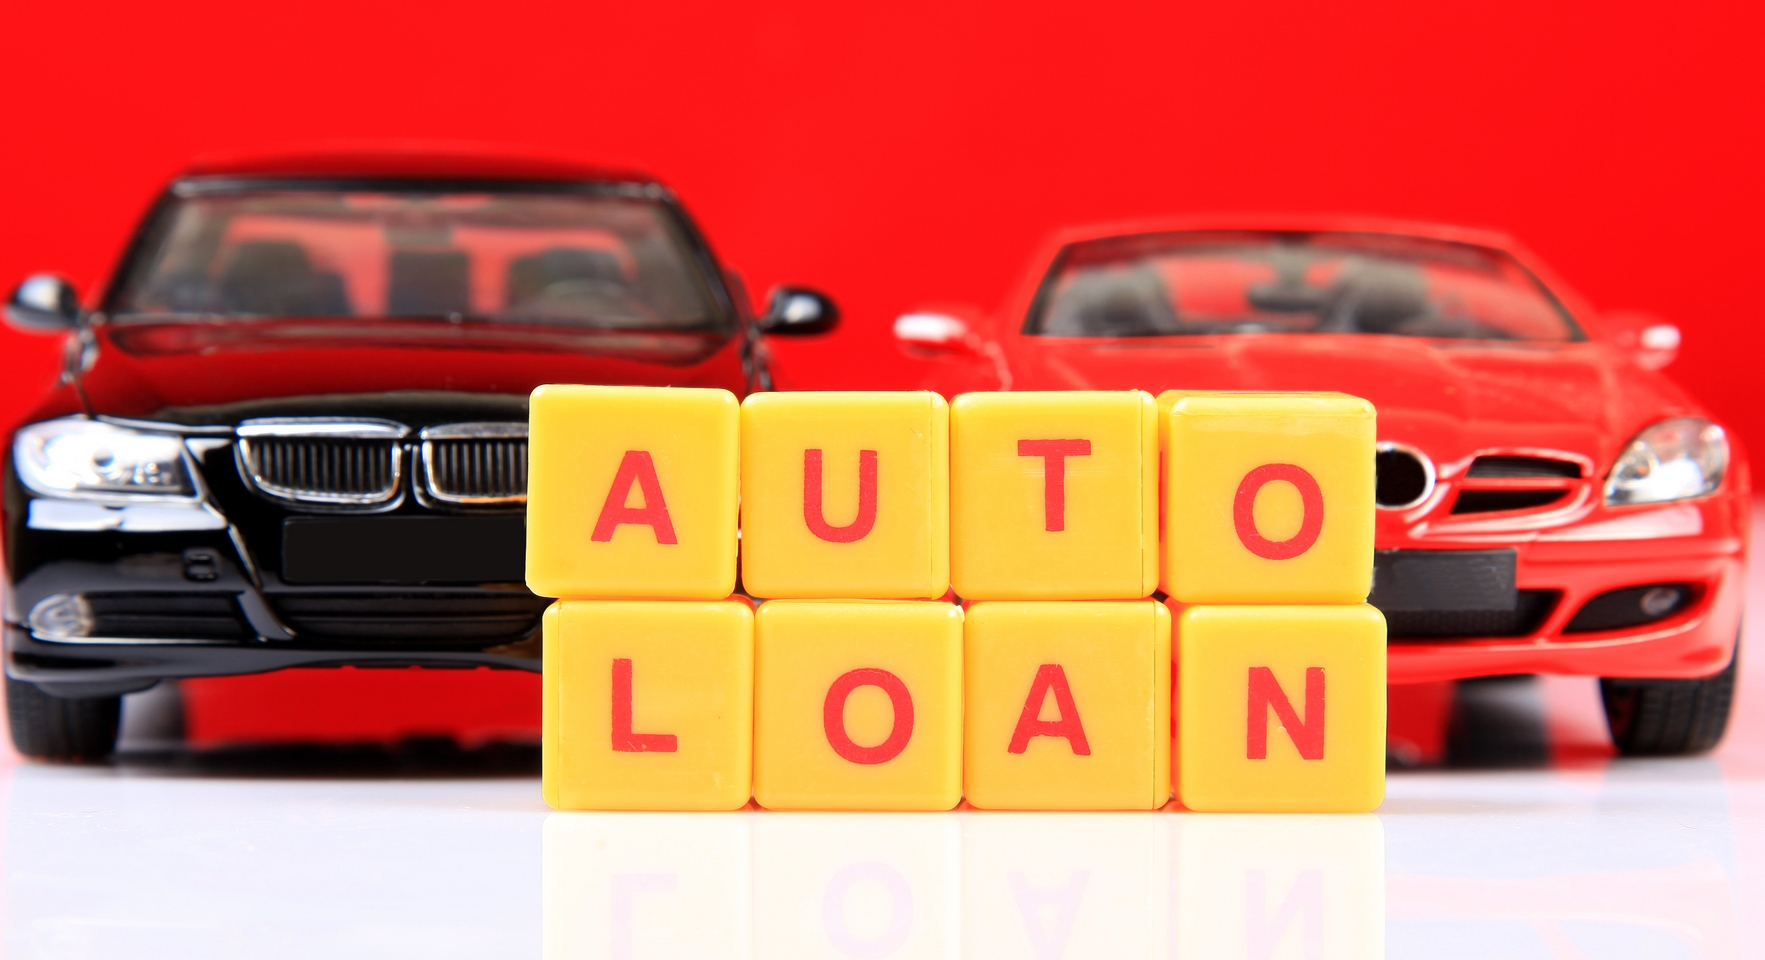 Need Cash To Buy New Car? Apply For Personal Loans To Buy A New Car